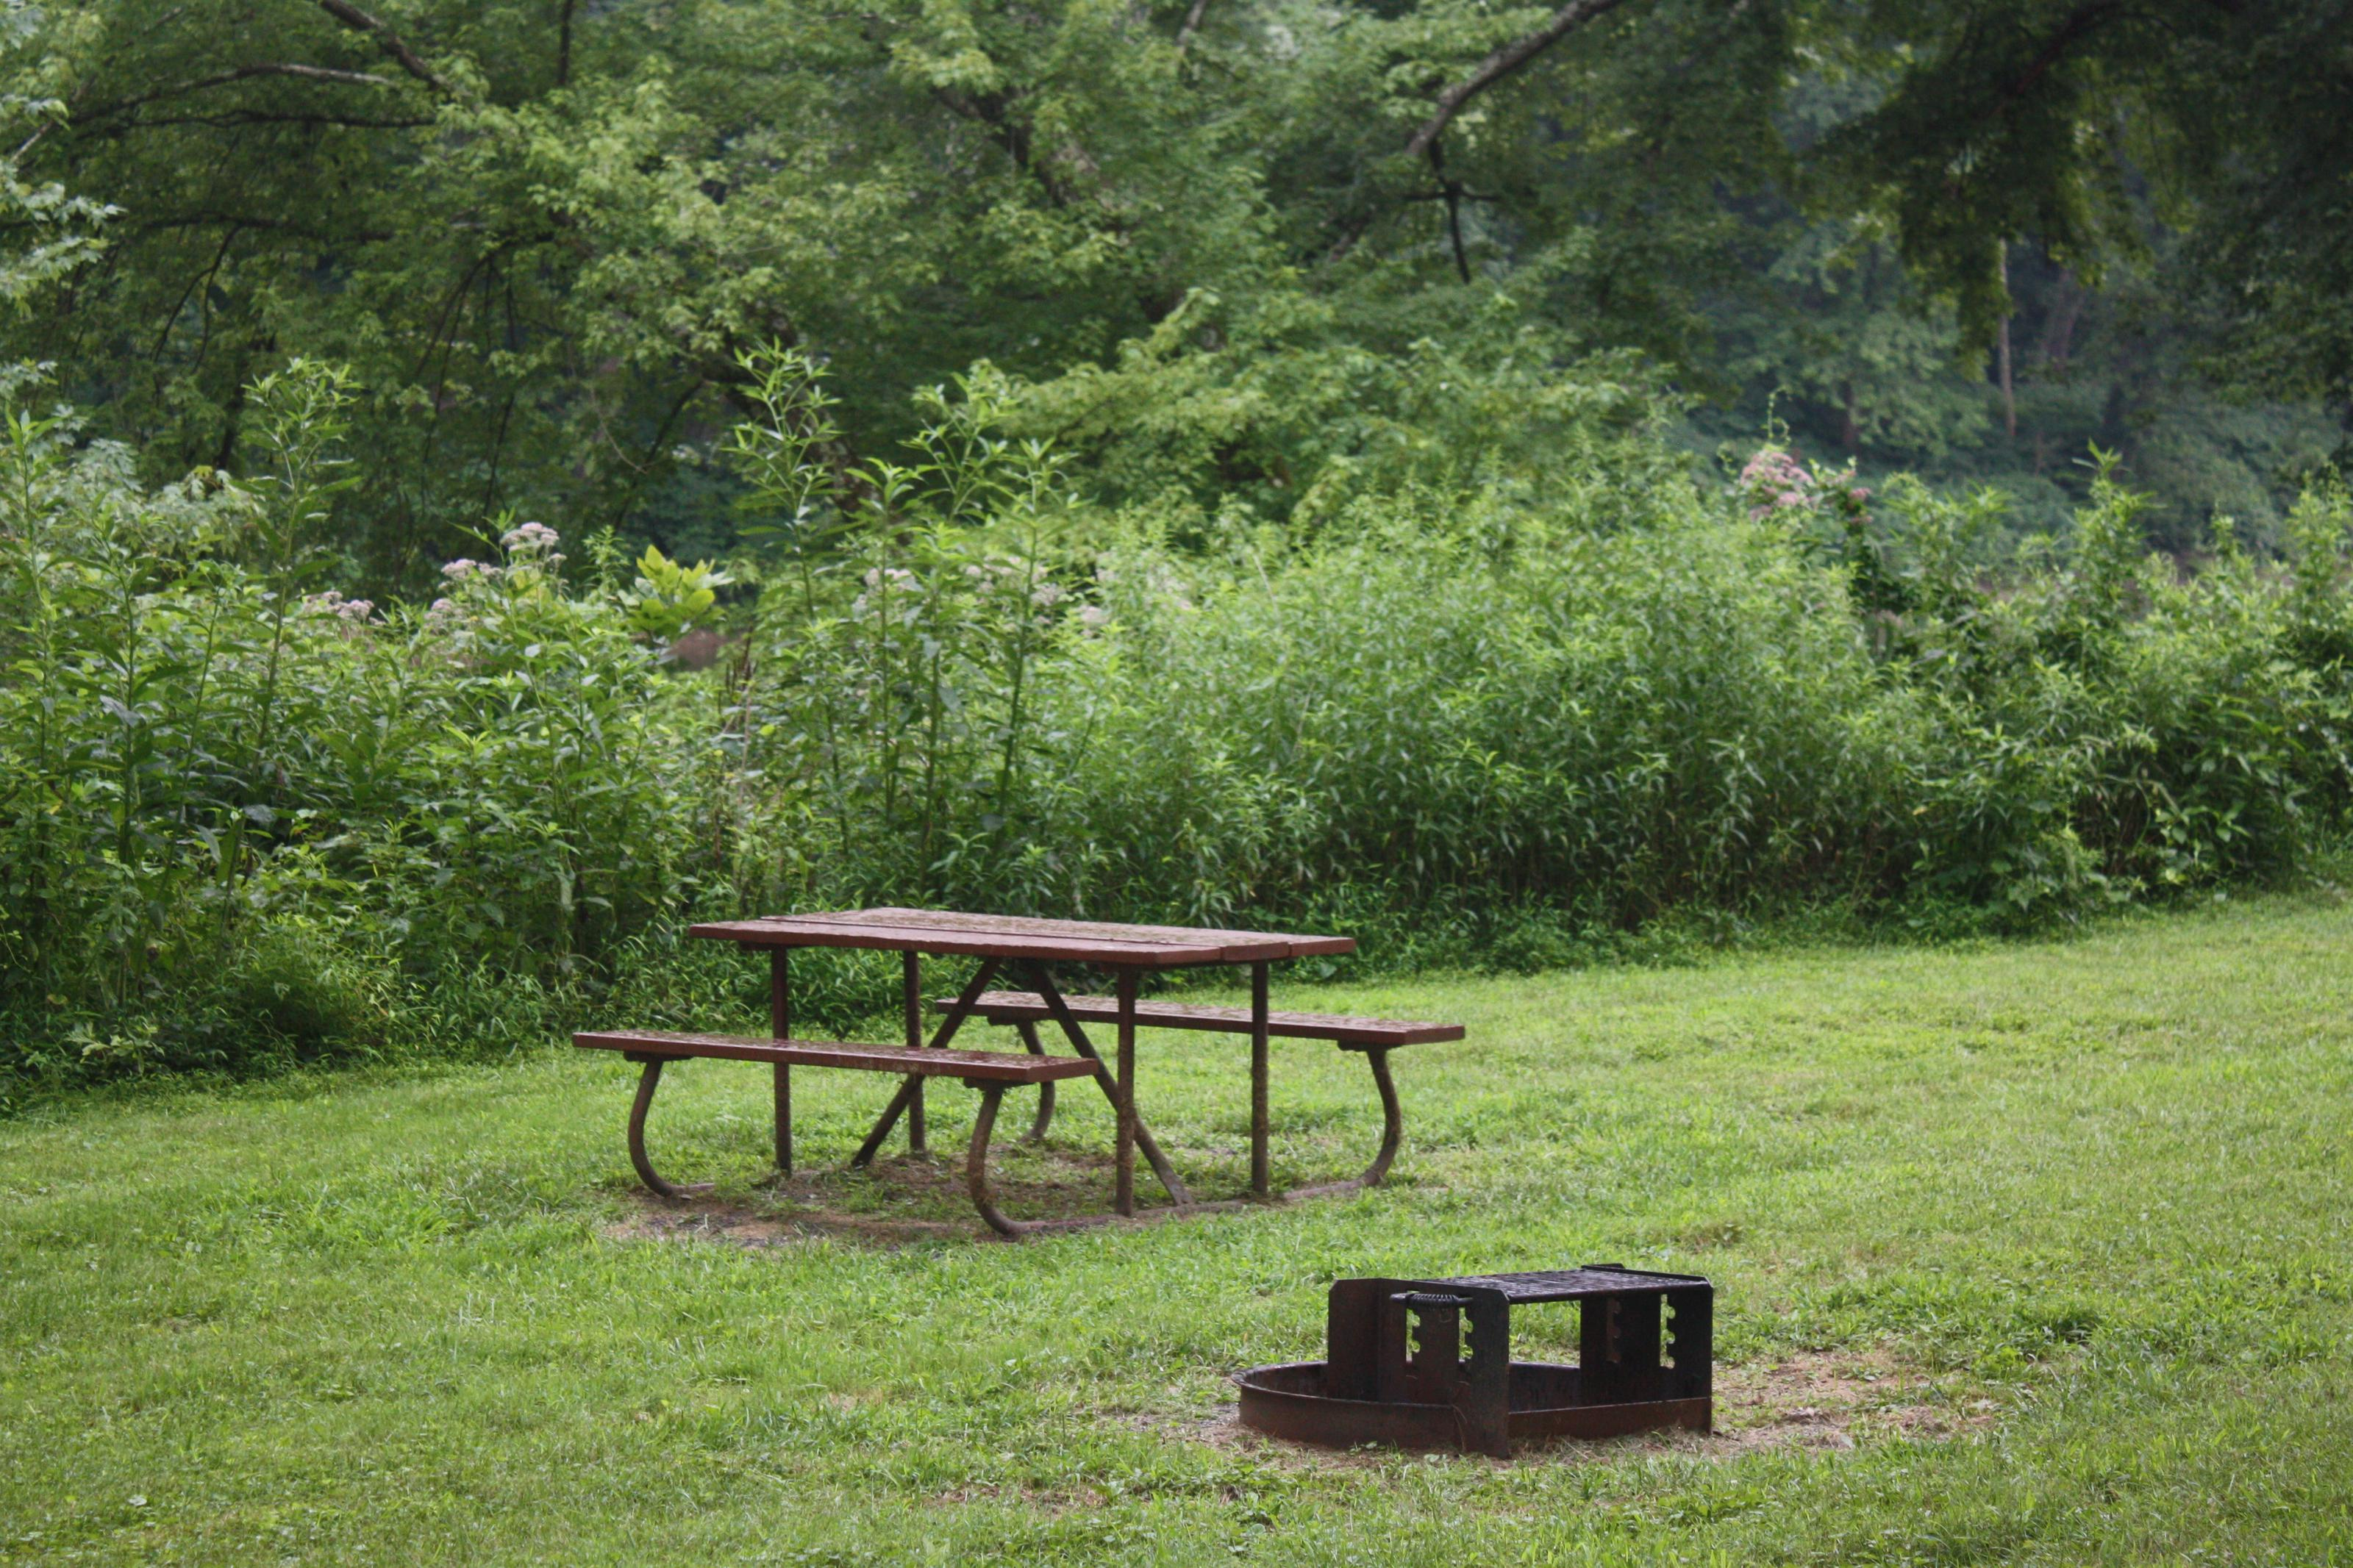 Campsite with picnic table and fire ring